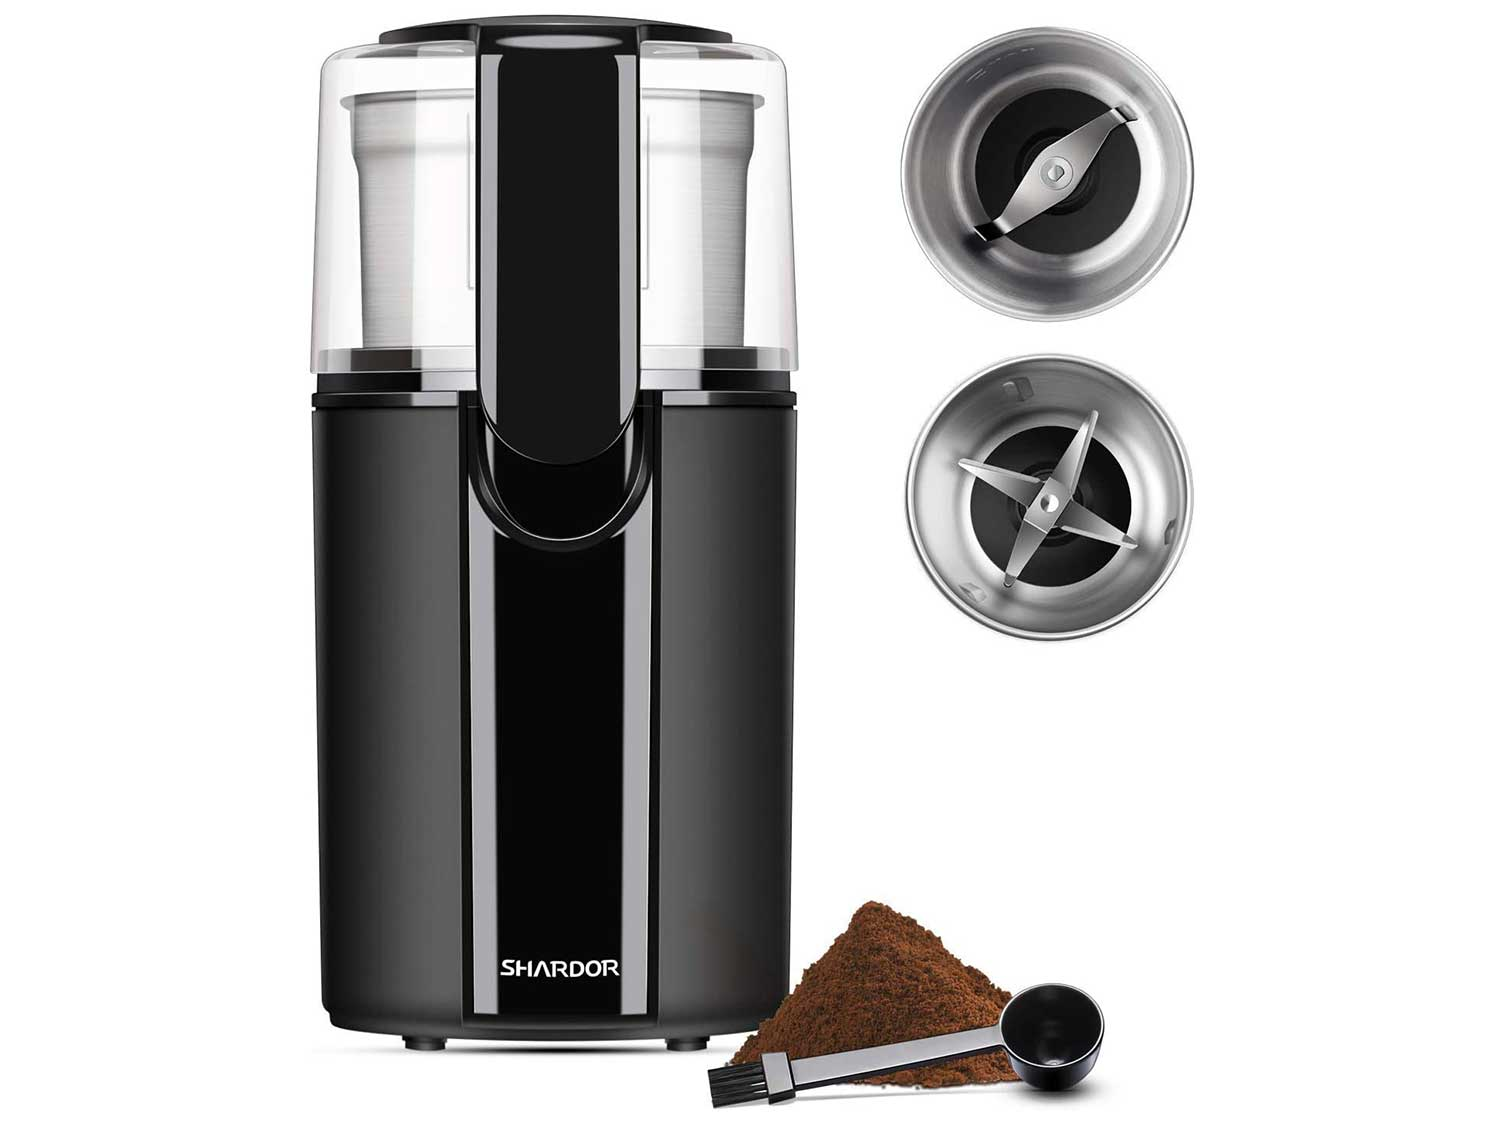 SHARDOR Coffee & Spice Grinders Electric, 2 Removable Stainless Steel Bowls for Dry or Wet Grinding